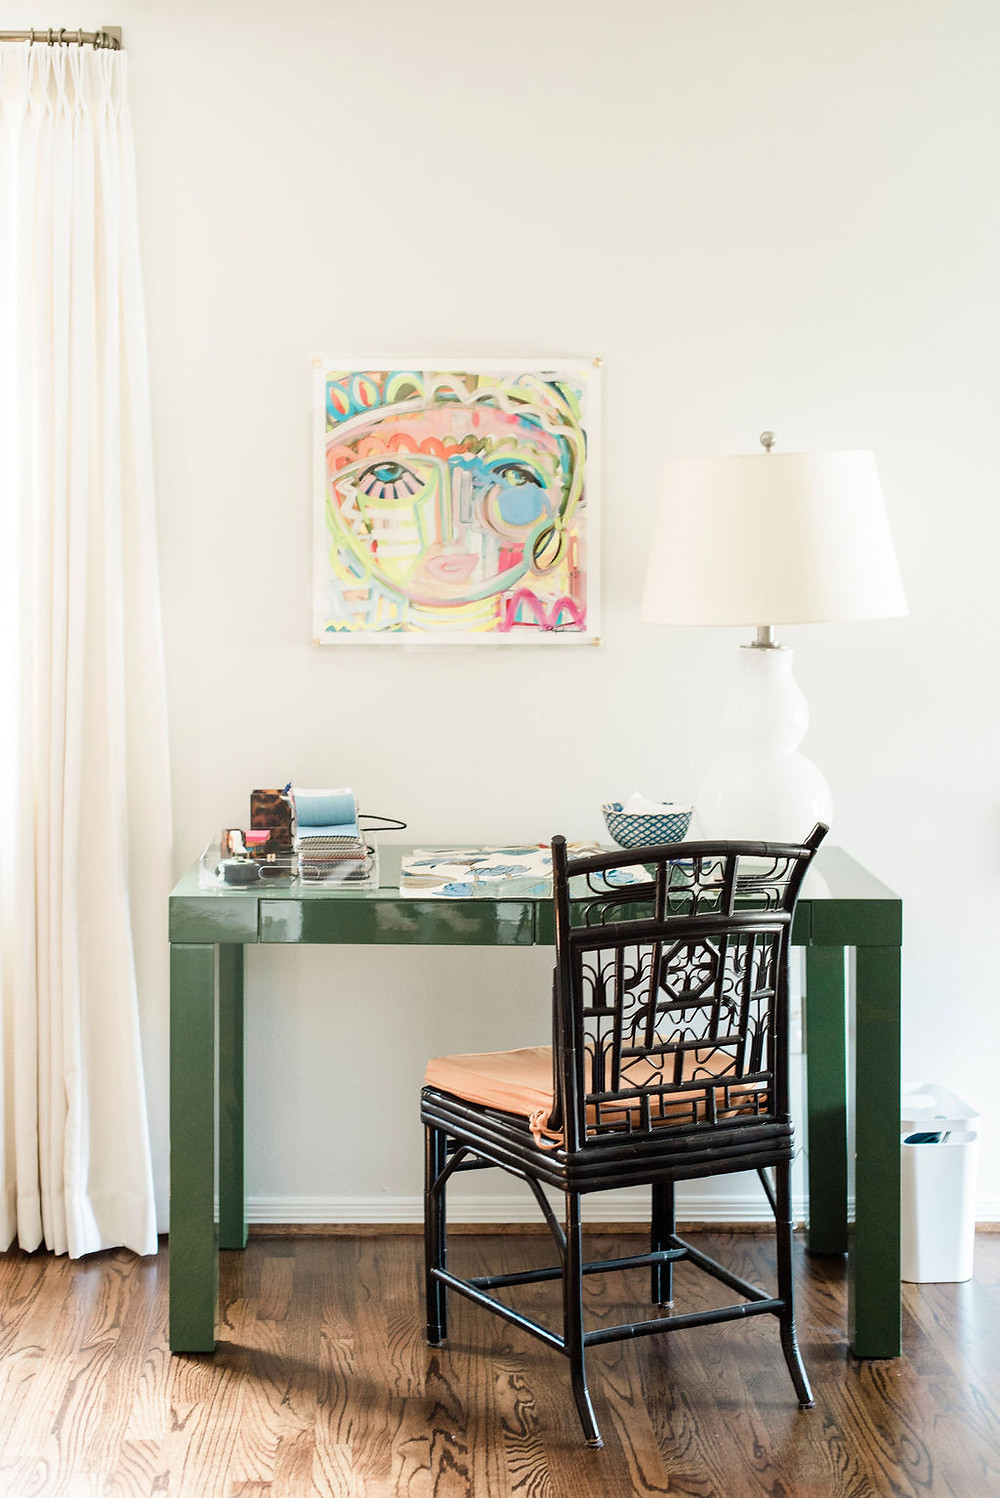 Design studio office of Houston based interior design firm Nancy Lane Interiors featuring green acrylic desk and colorful artwork by Windy O'Connor.